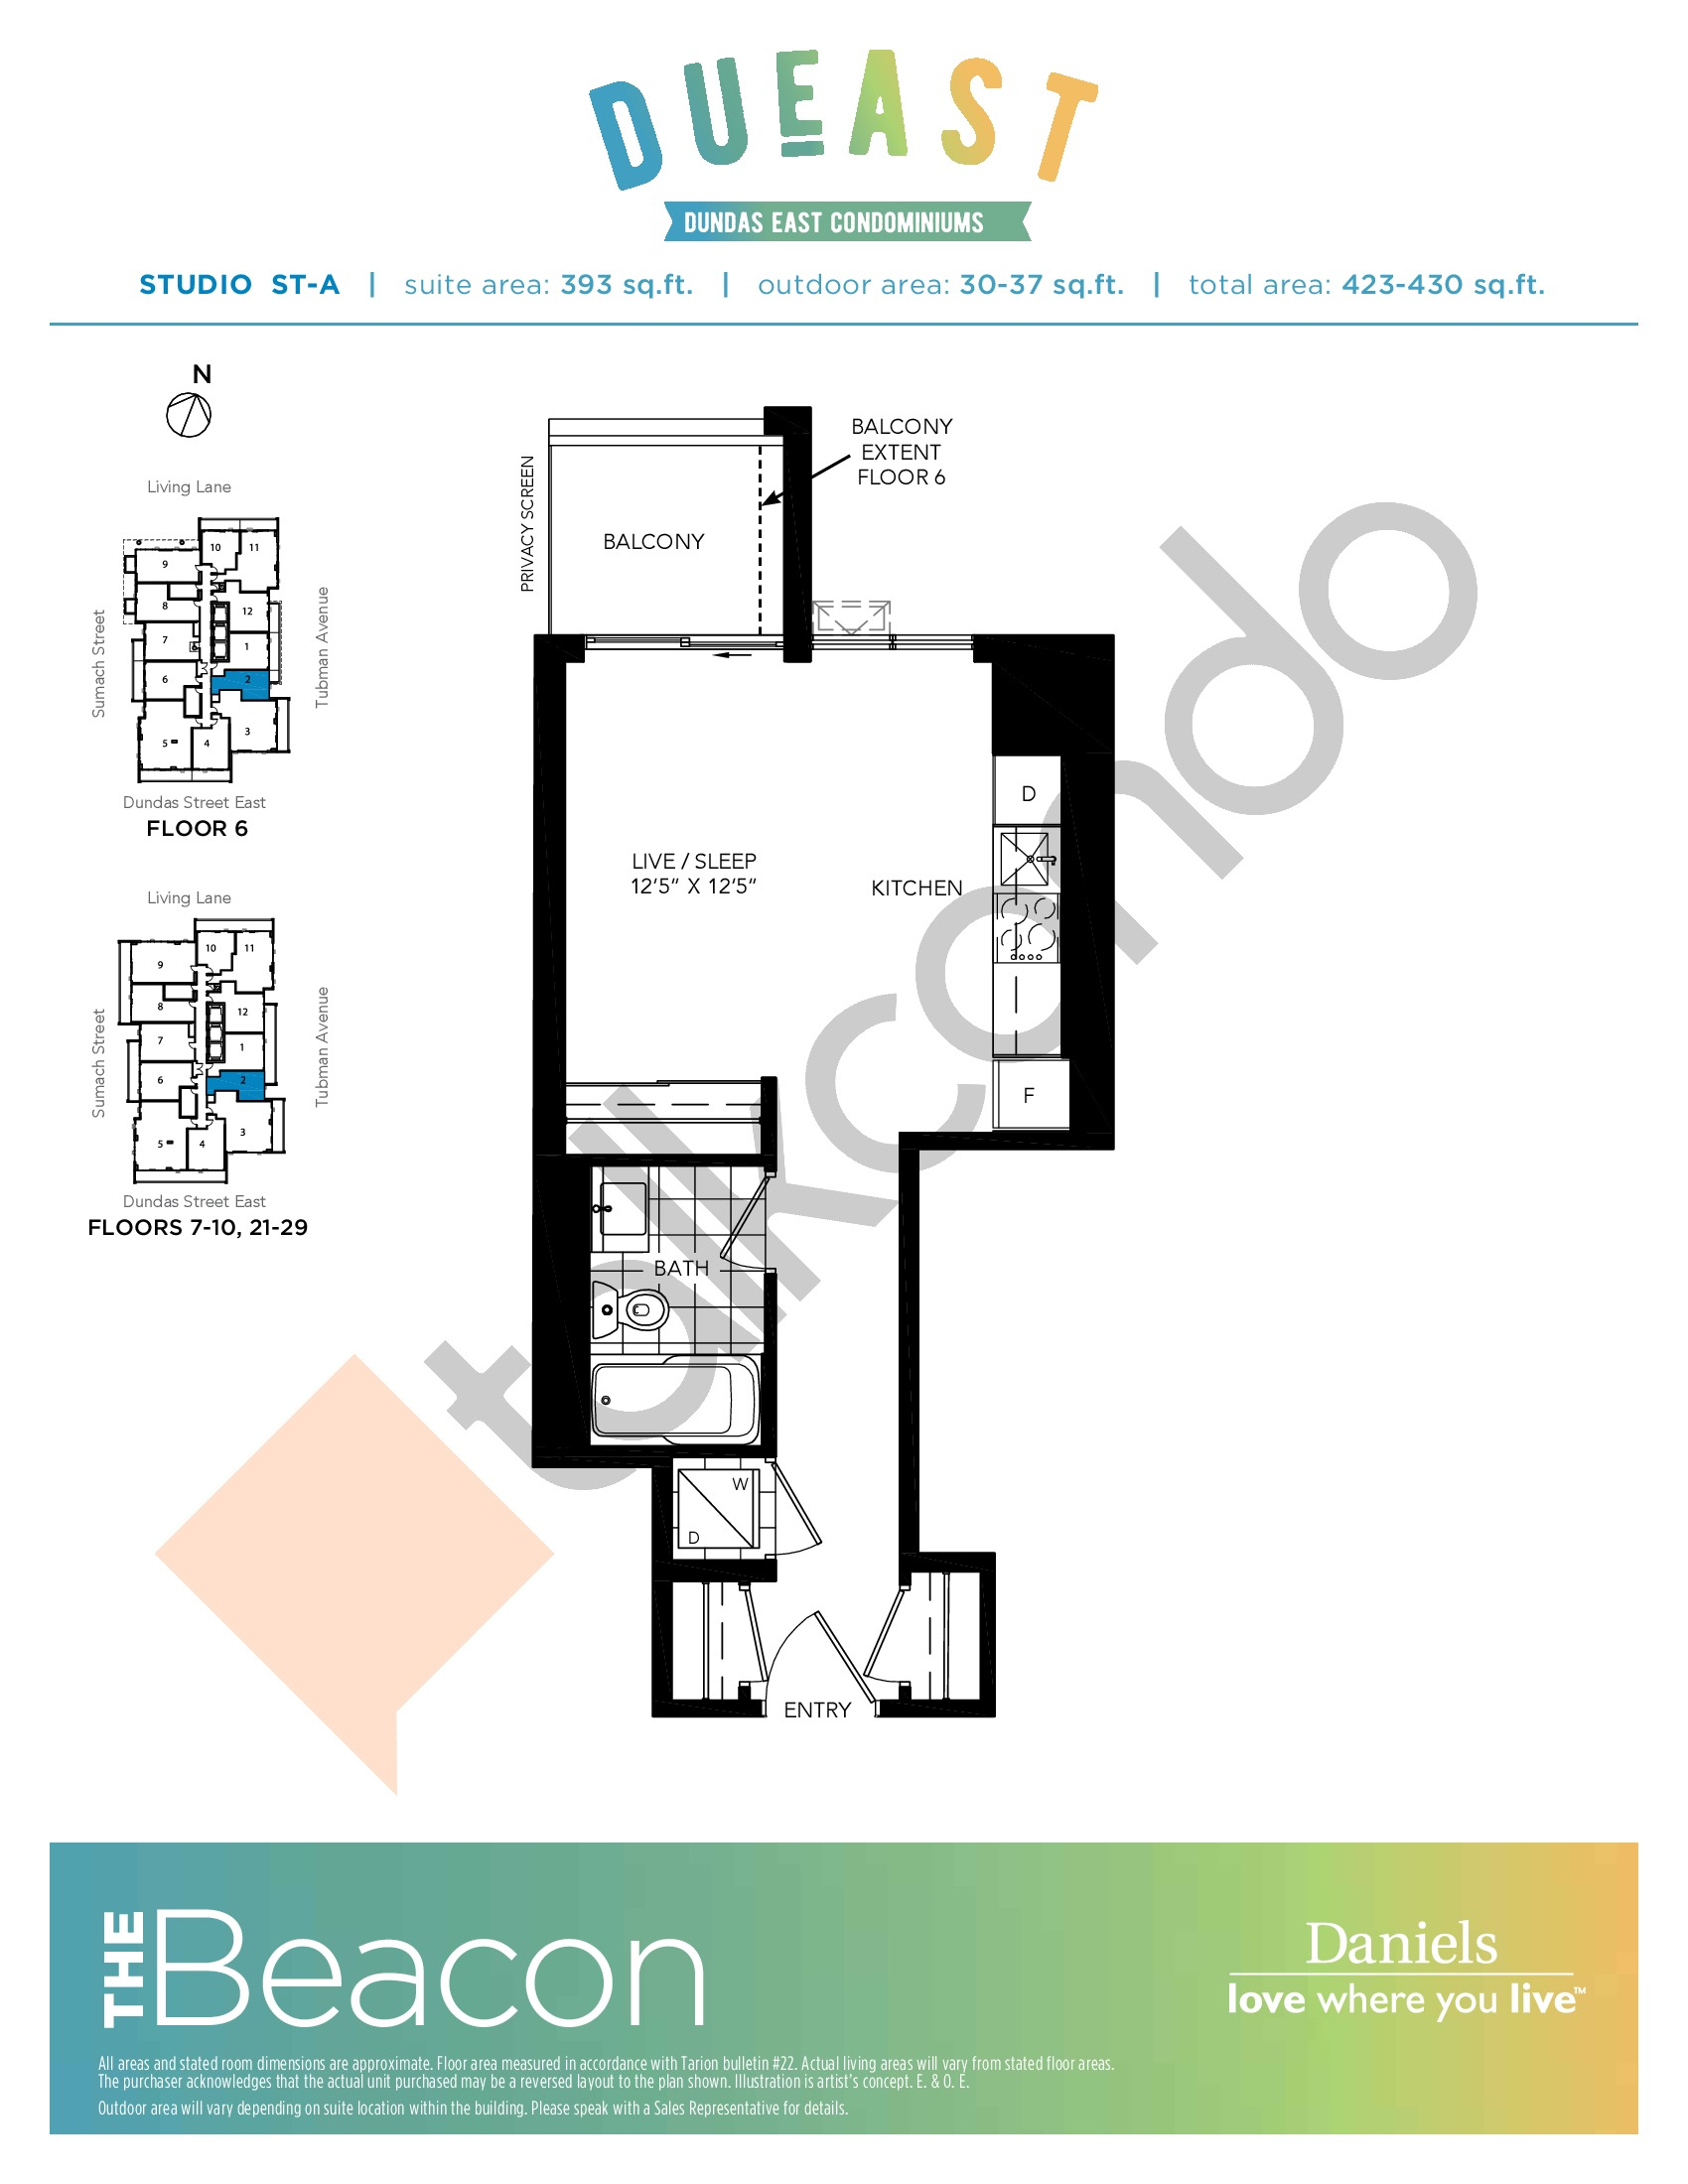 The Beacon (ST-A) Floor Plan at DuEast Condos - 393 sq.ft